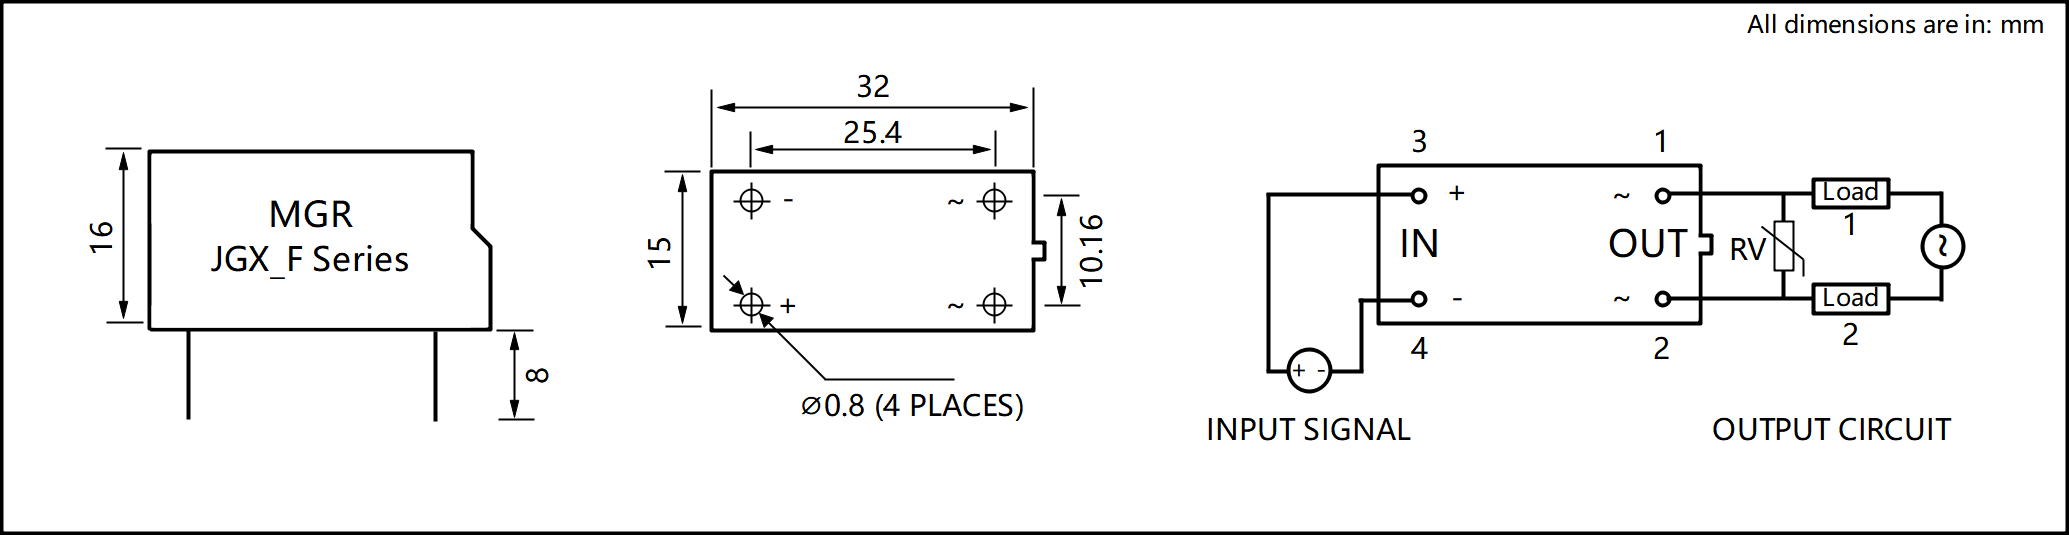 JGX_F Series Plastic Housing PCB Mount Solid State Relay Circuit Wring Diagram